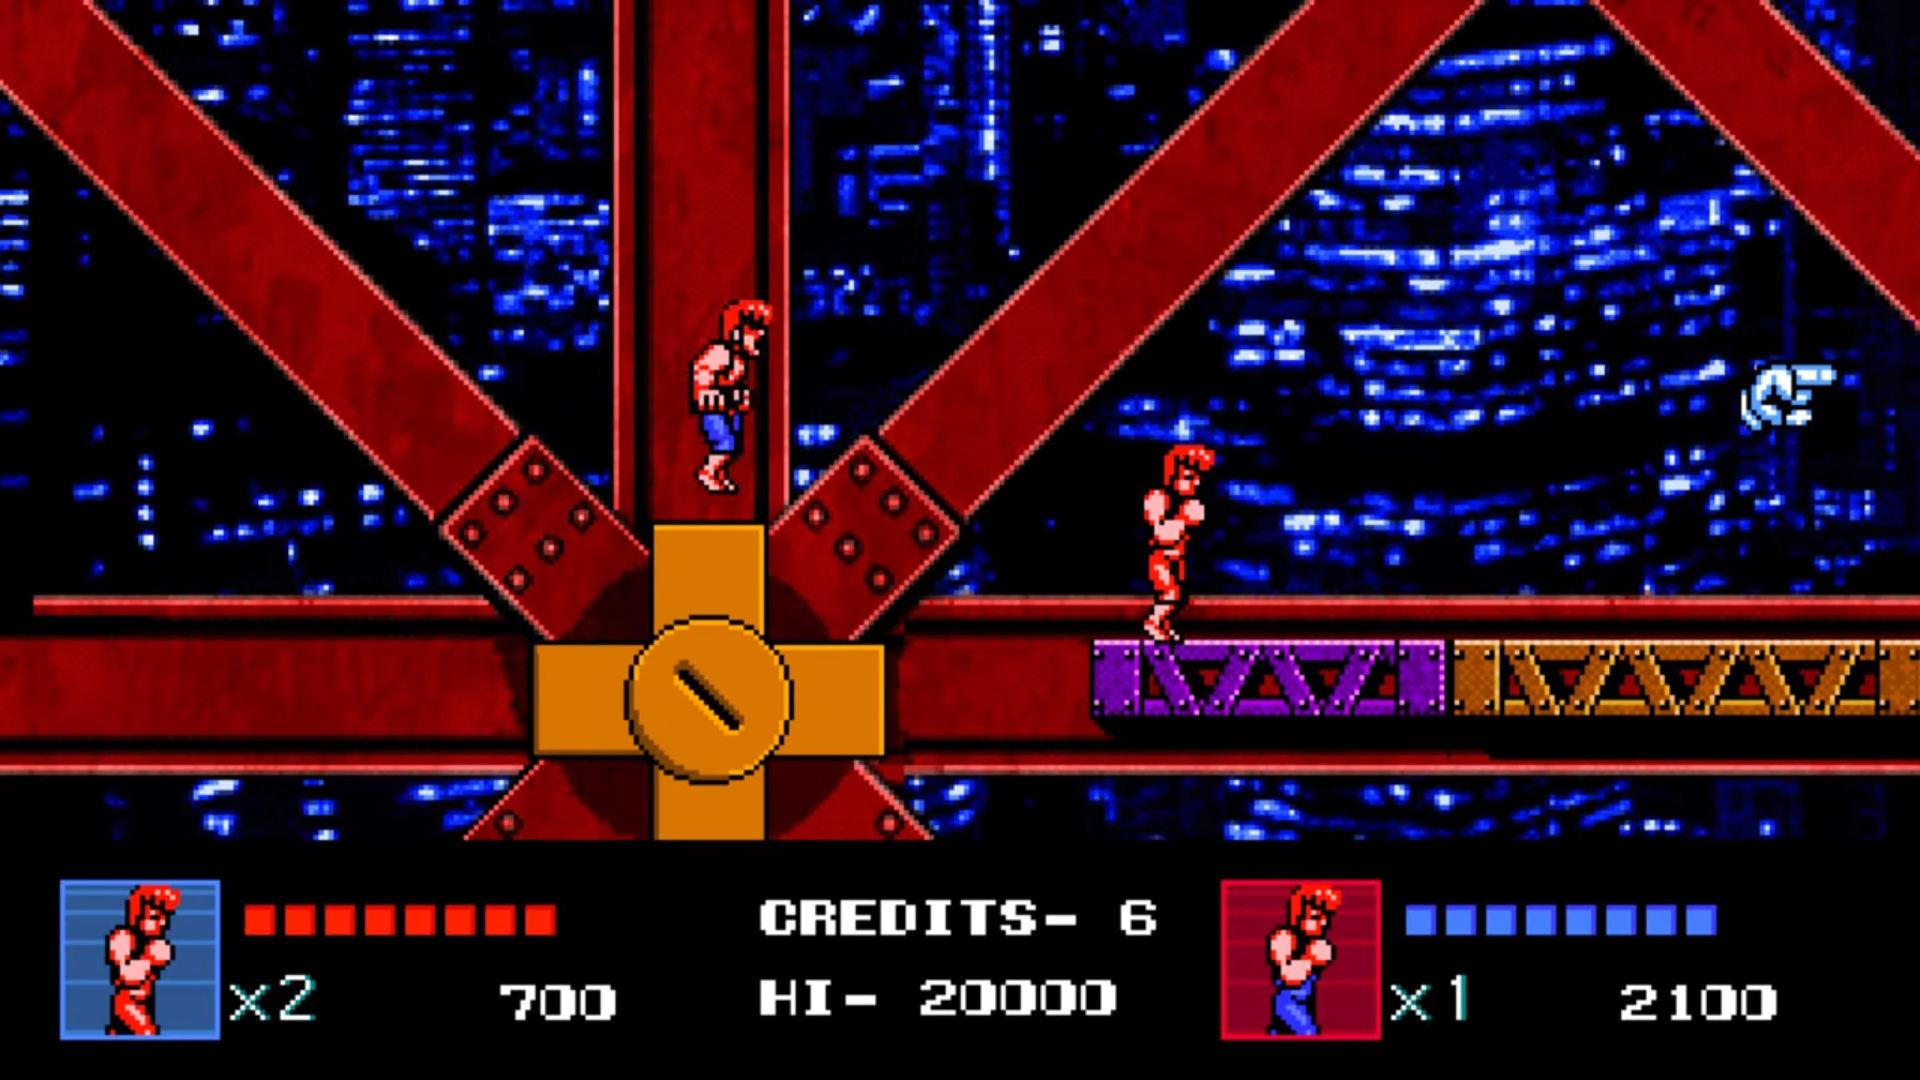 Annunciato Double Dragon IV per PC e PS4